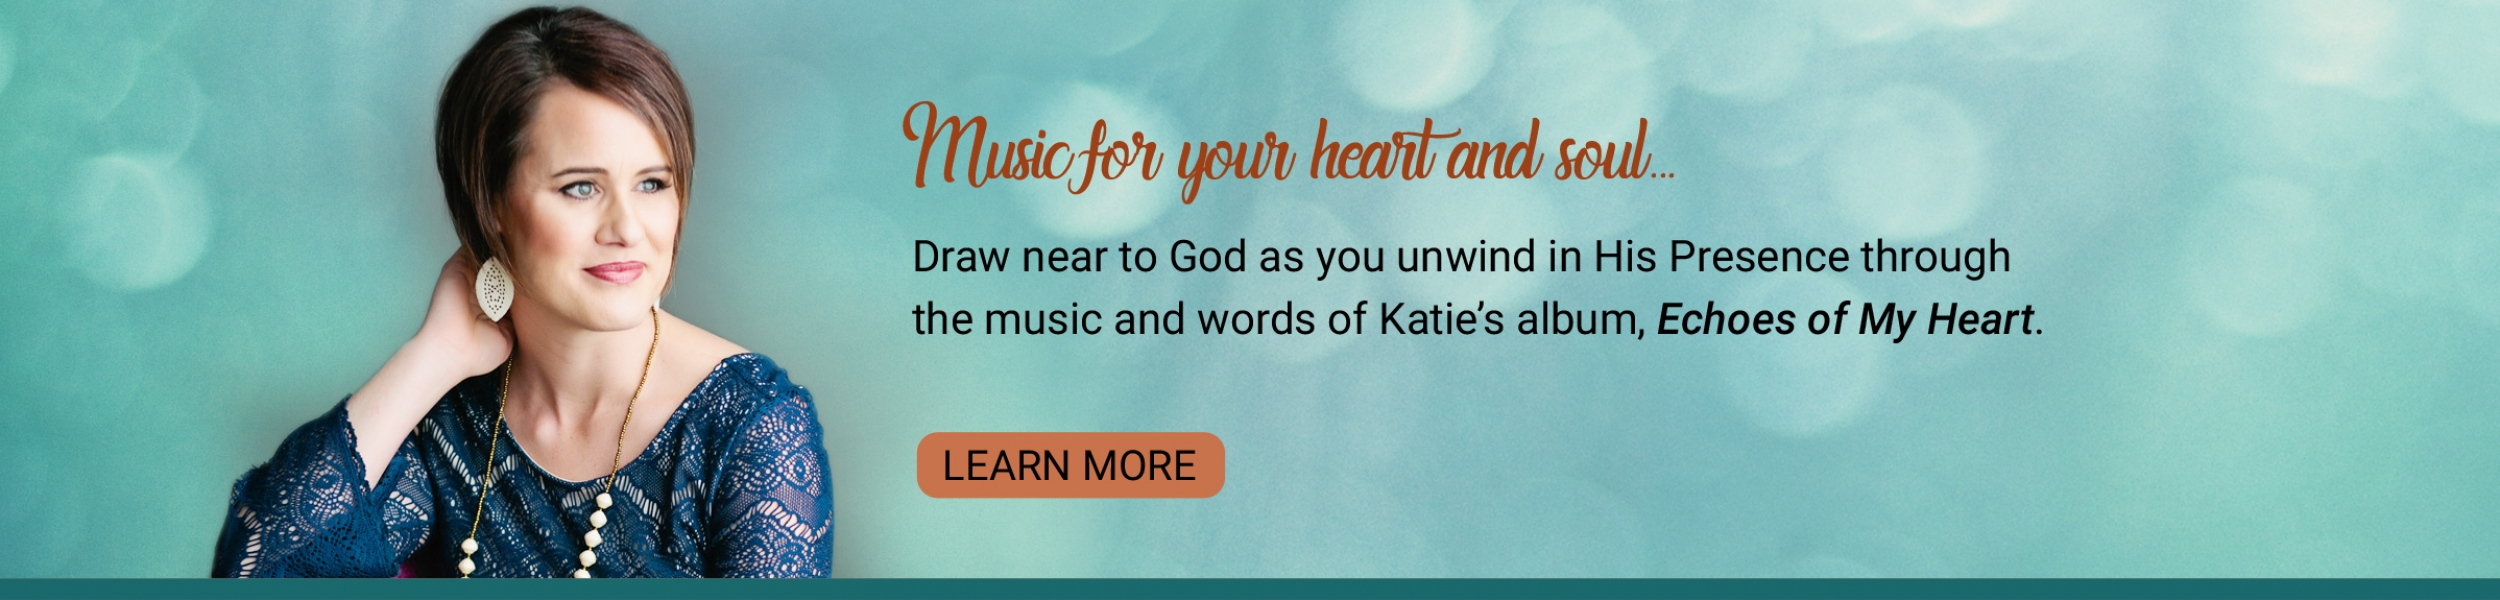 Katie Reid - Echoes of My Heart